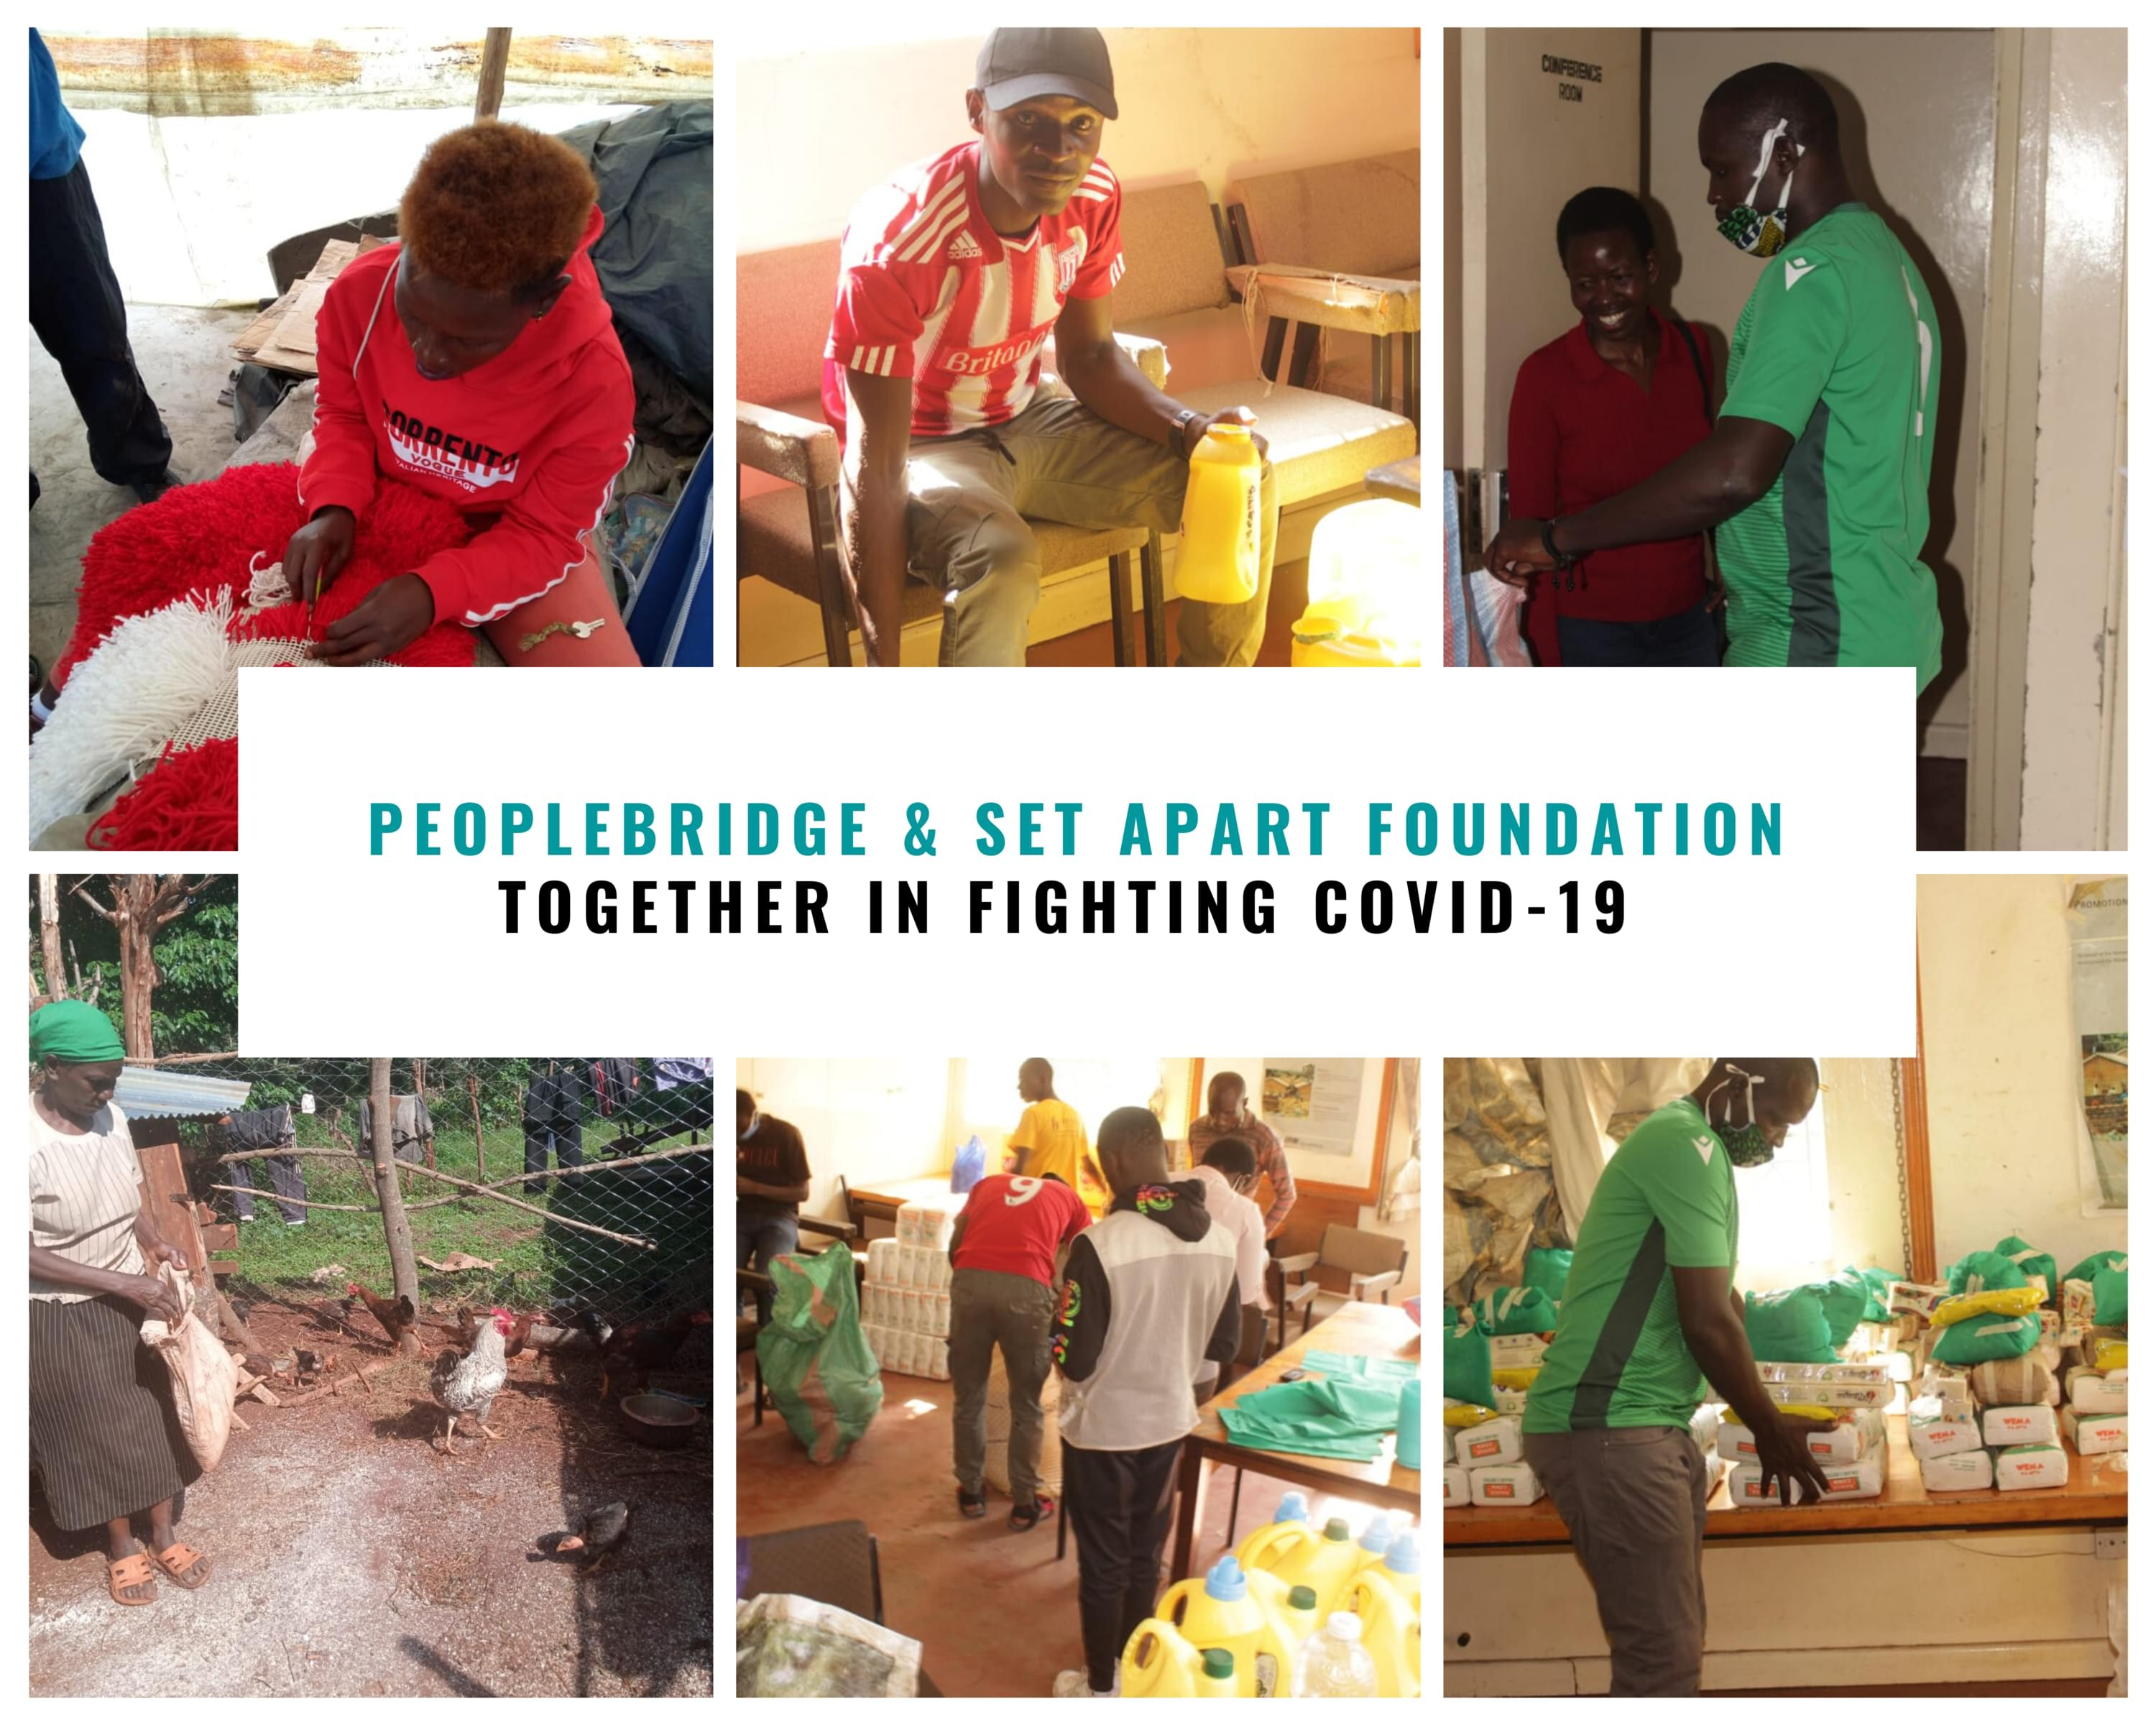 PEOPLEBRIDGE & SET APART FOUNDATION TOGETHER IN FIGHTING COVID-19